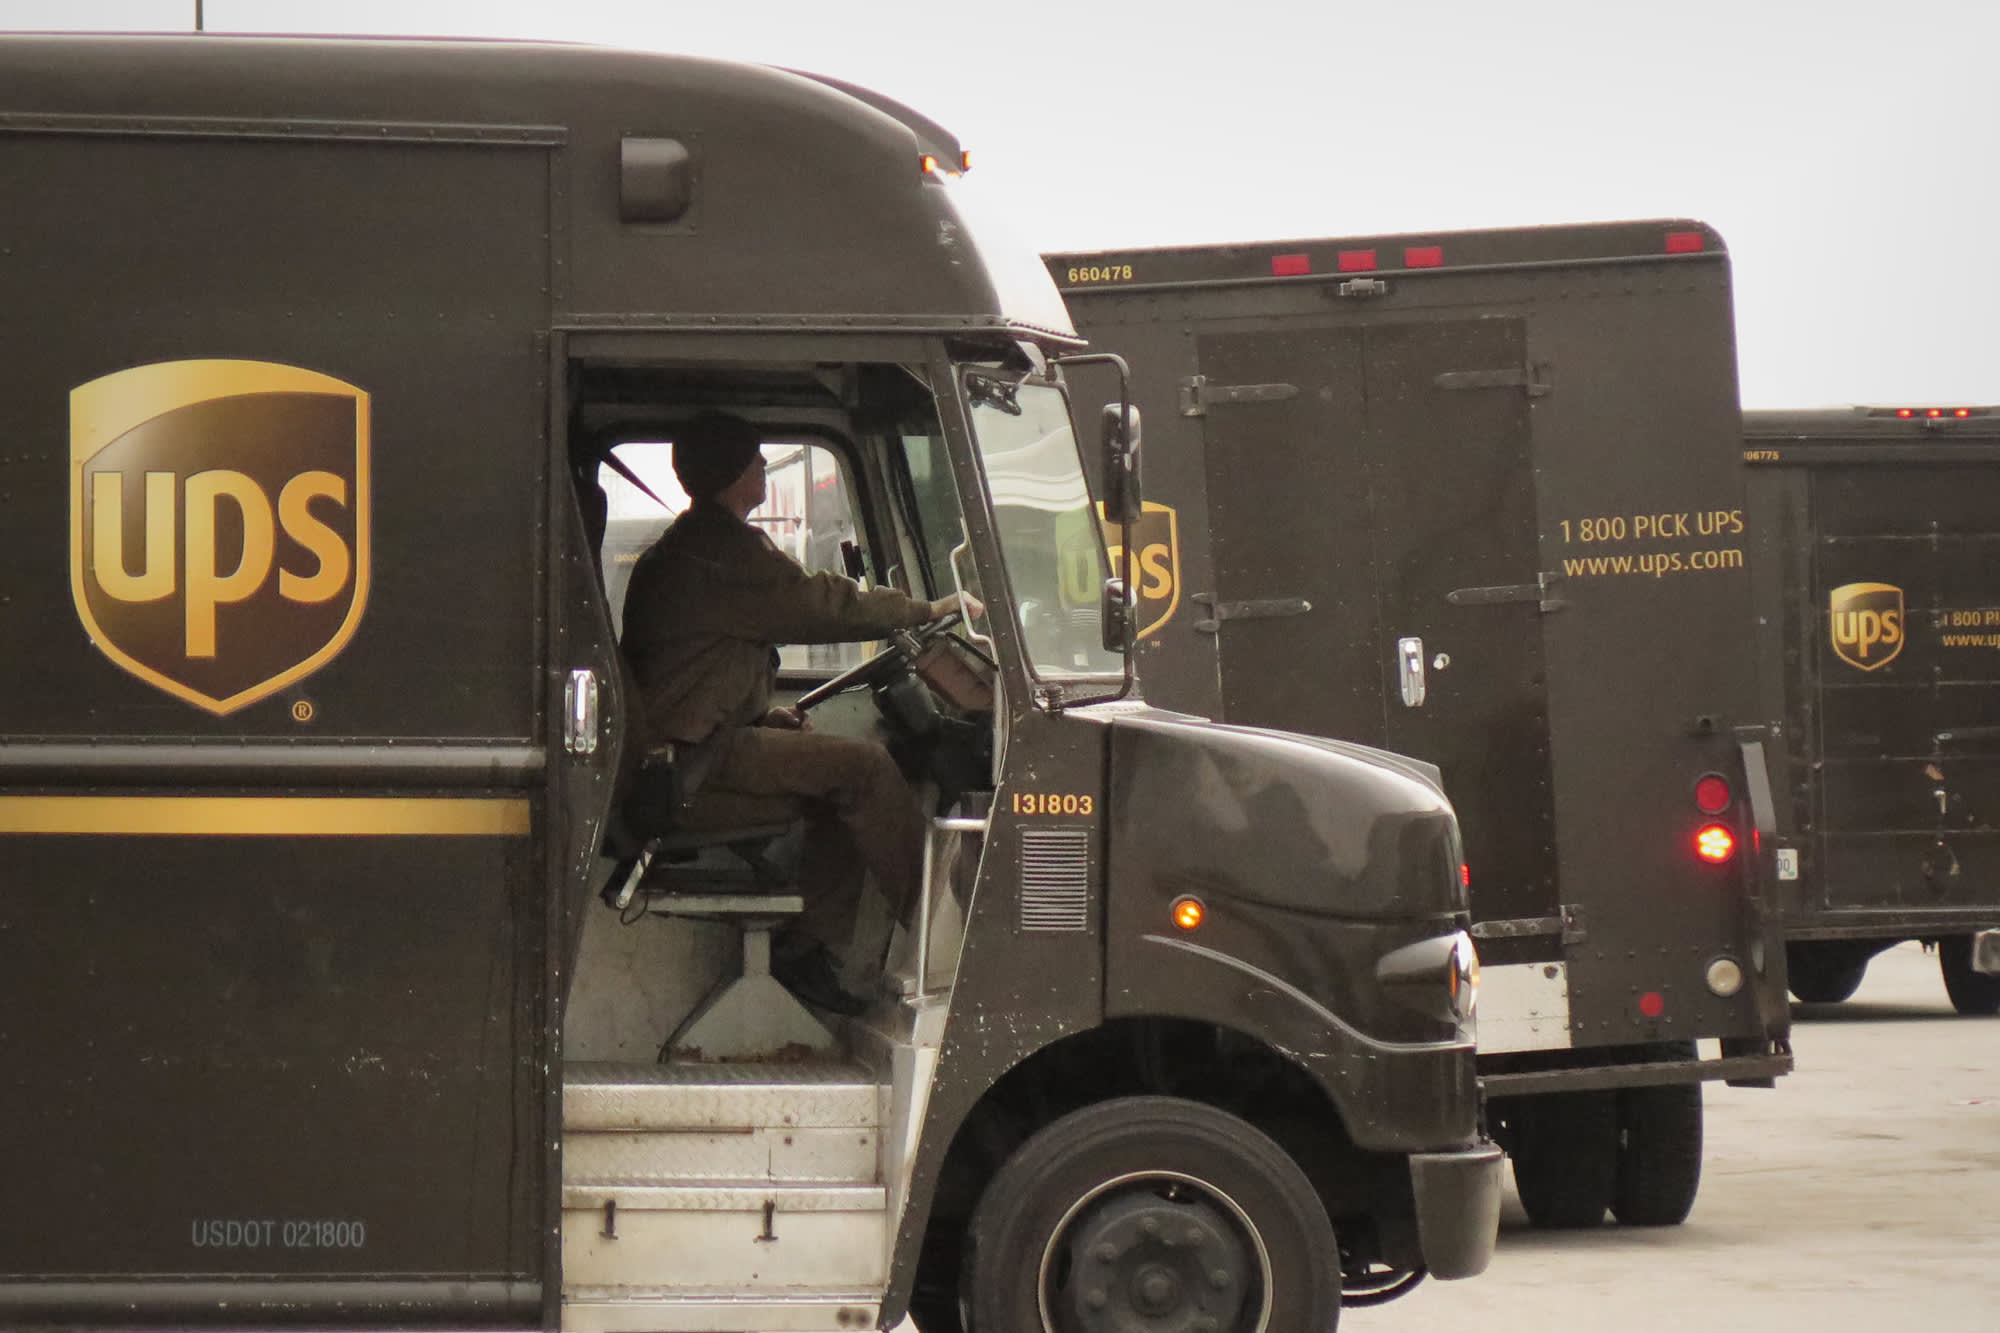 Ups Posts Earnings Of 1 35 A Share Vs 1 26 Expected